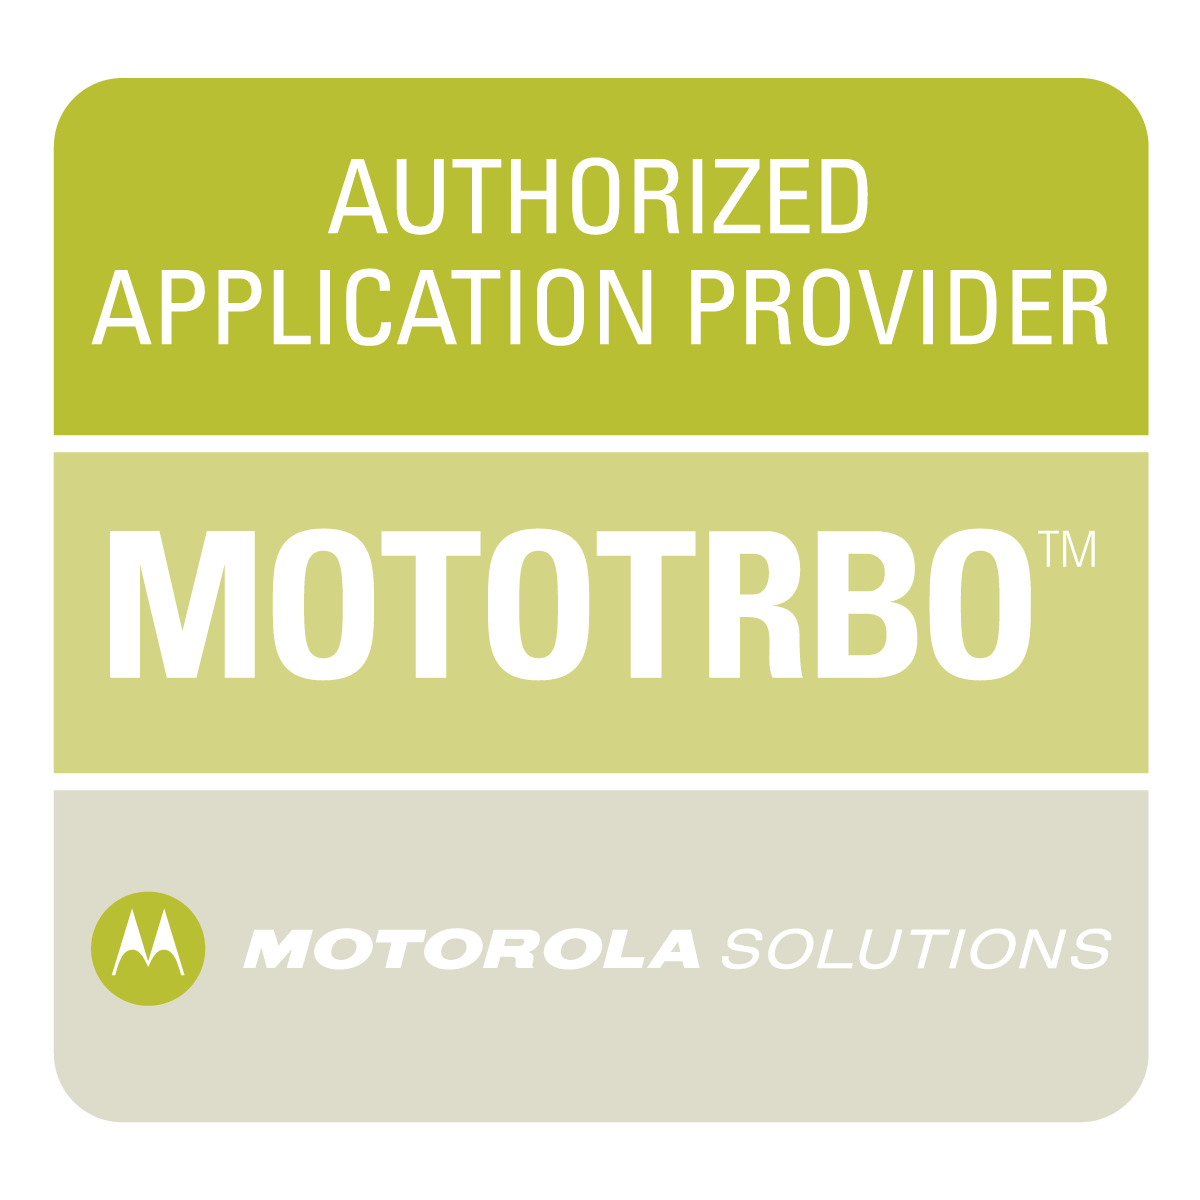 Motorola Authorized Application Provider